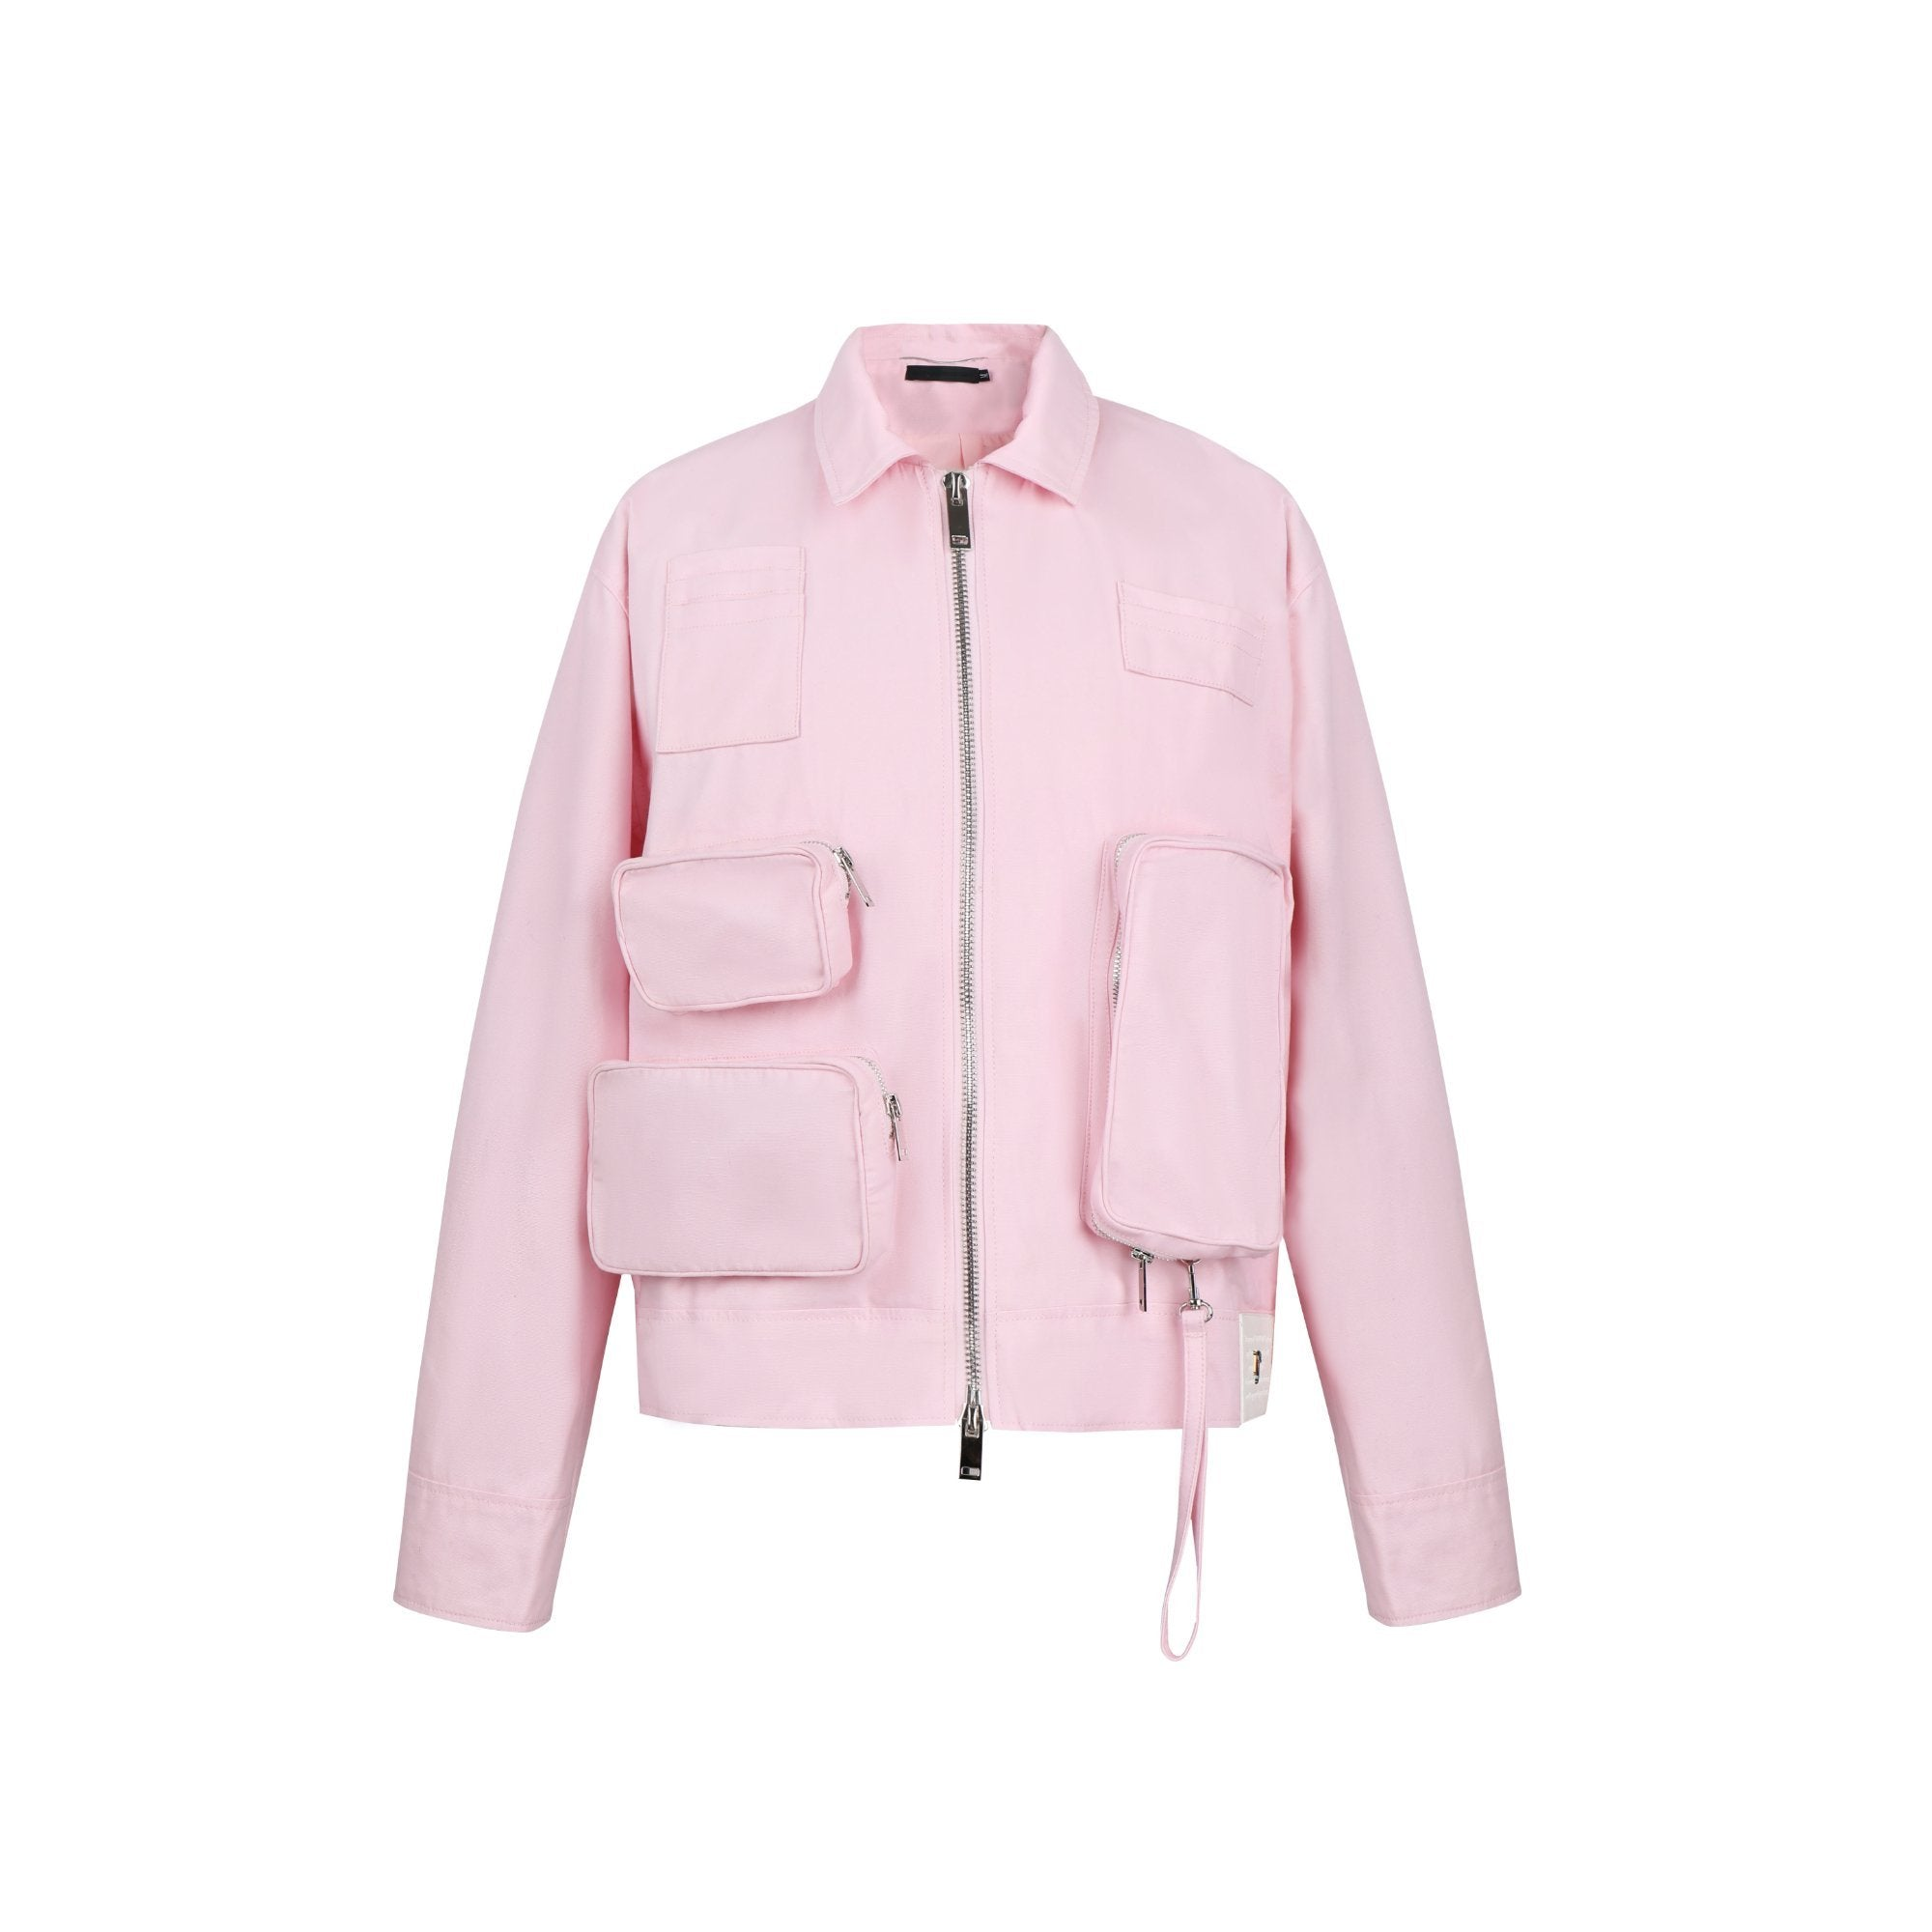 ONOFFON Pink Pocket Leather Jacket | MADA IN CHINA